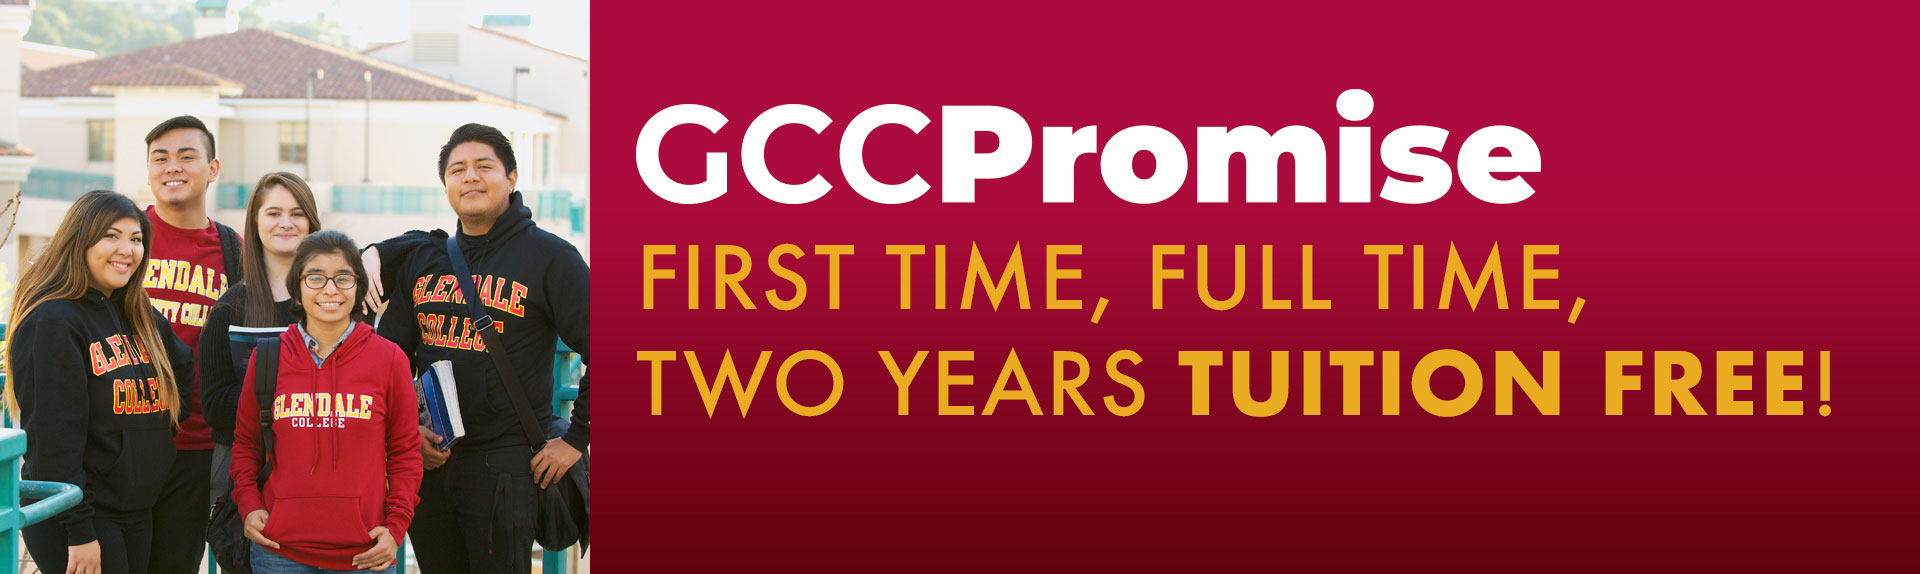 GCCPromise First Year, Full Time, Two Years Tuition Free!